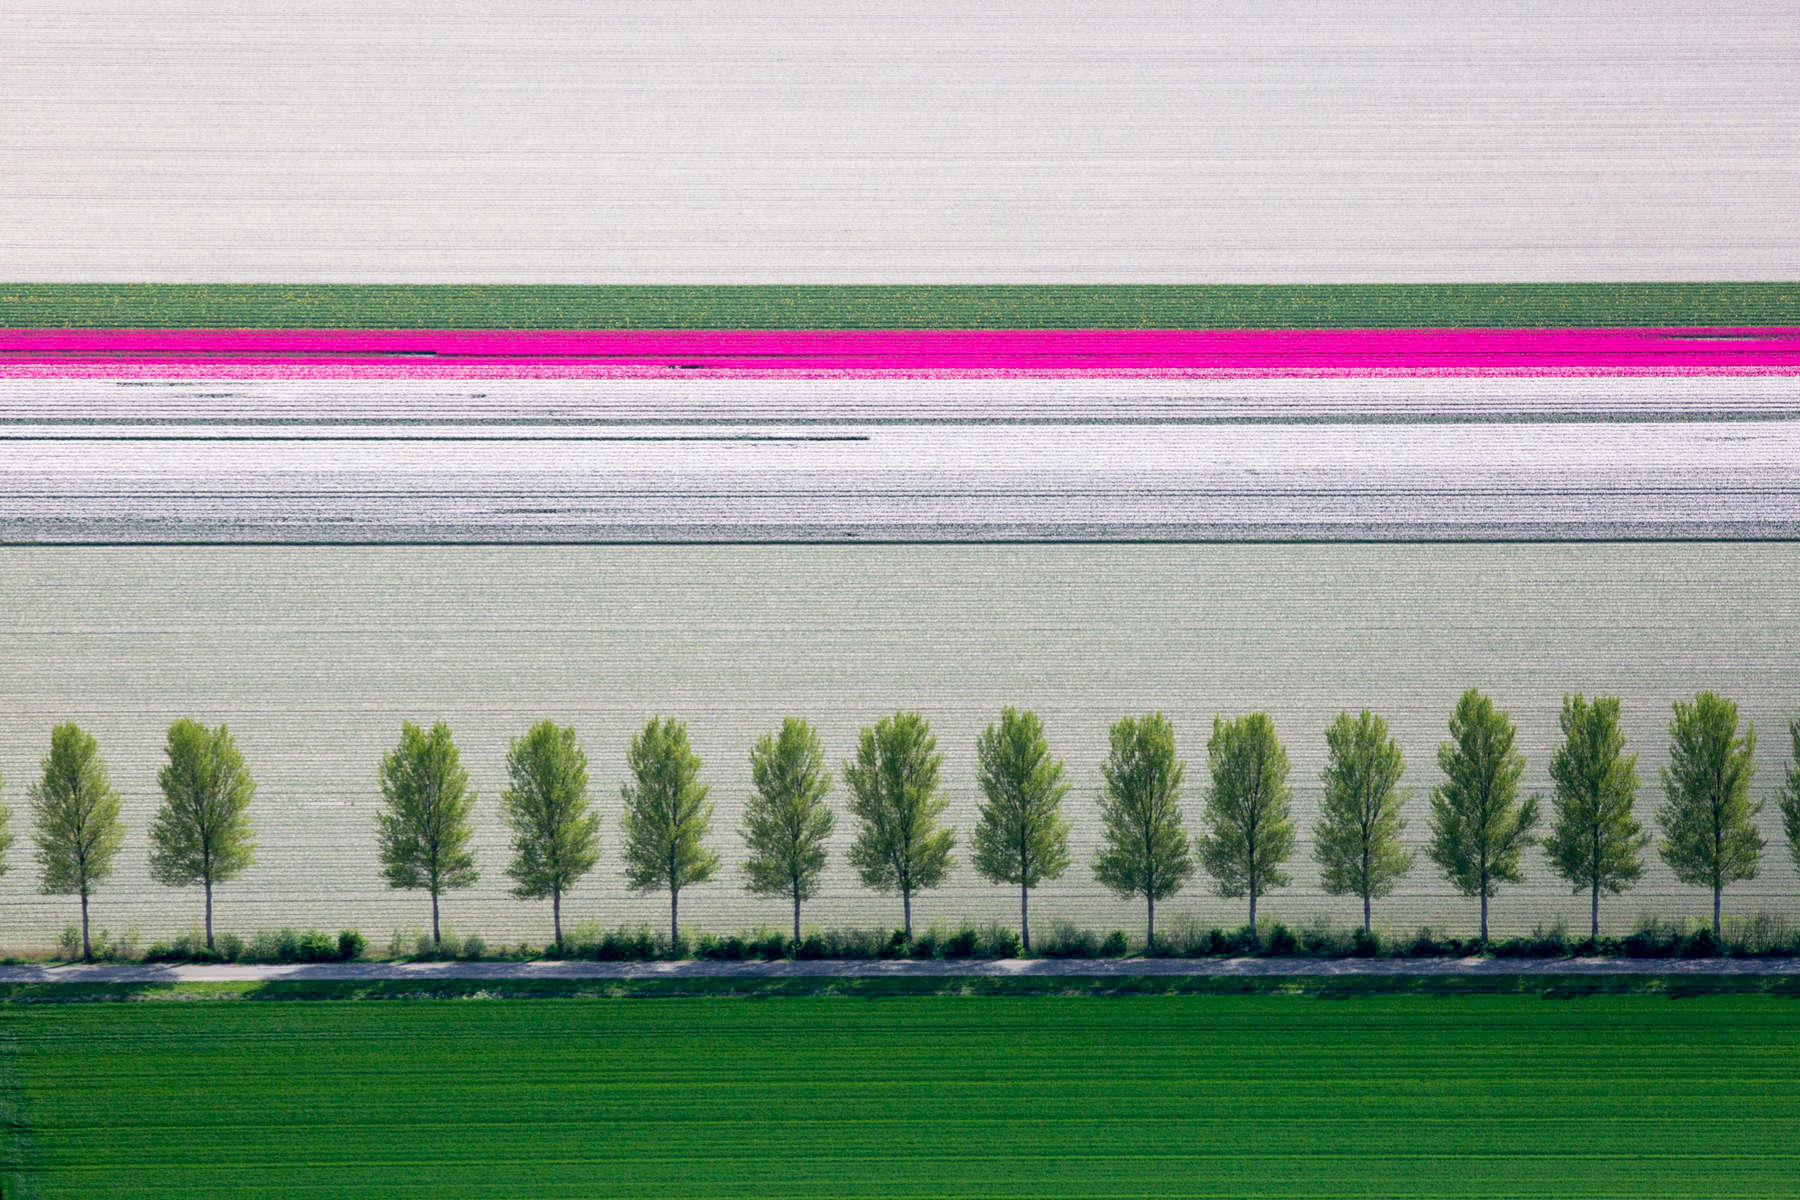 Tulip and Tree Rows, Creil, Netherlands 2015 (150510-0191)